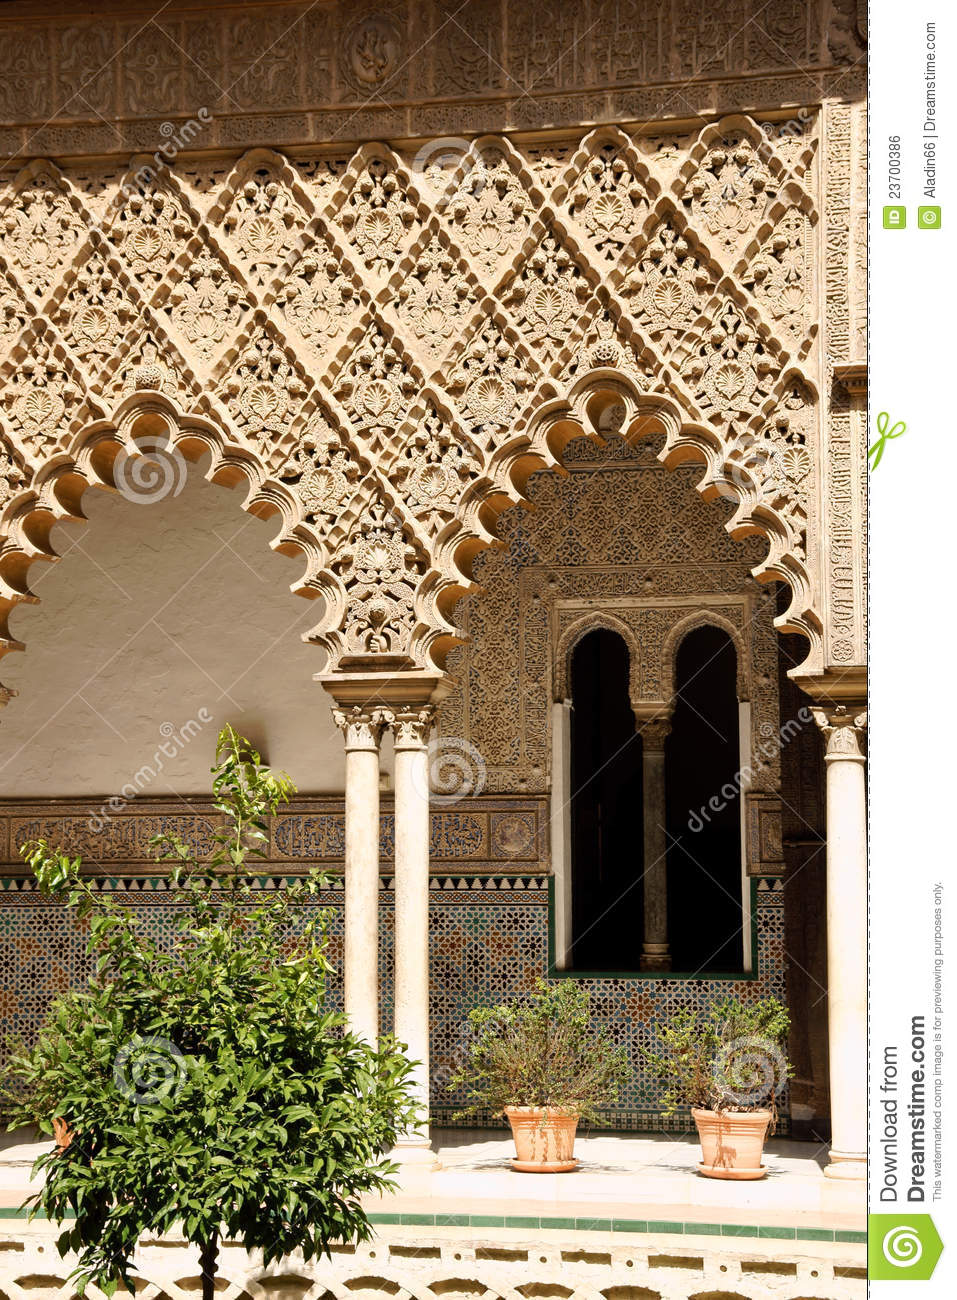 Patio de las Doncellas in Siviglia